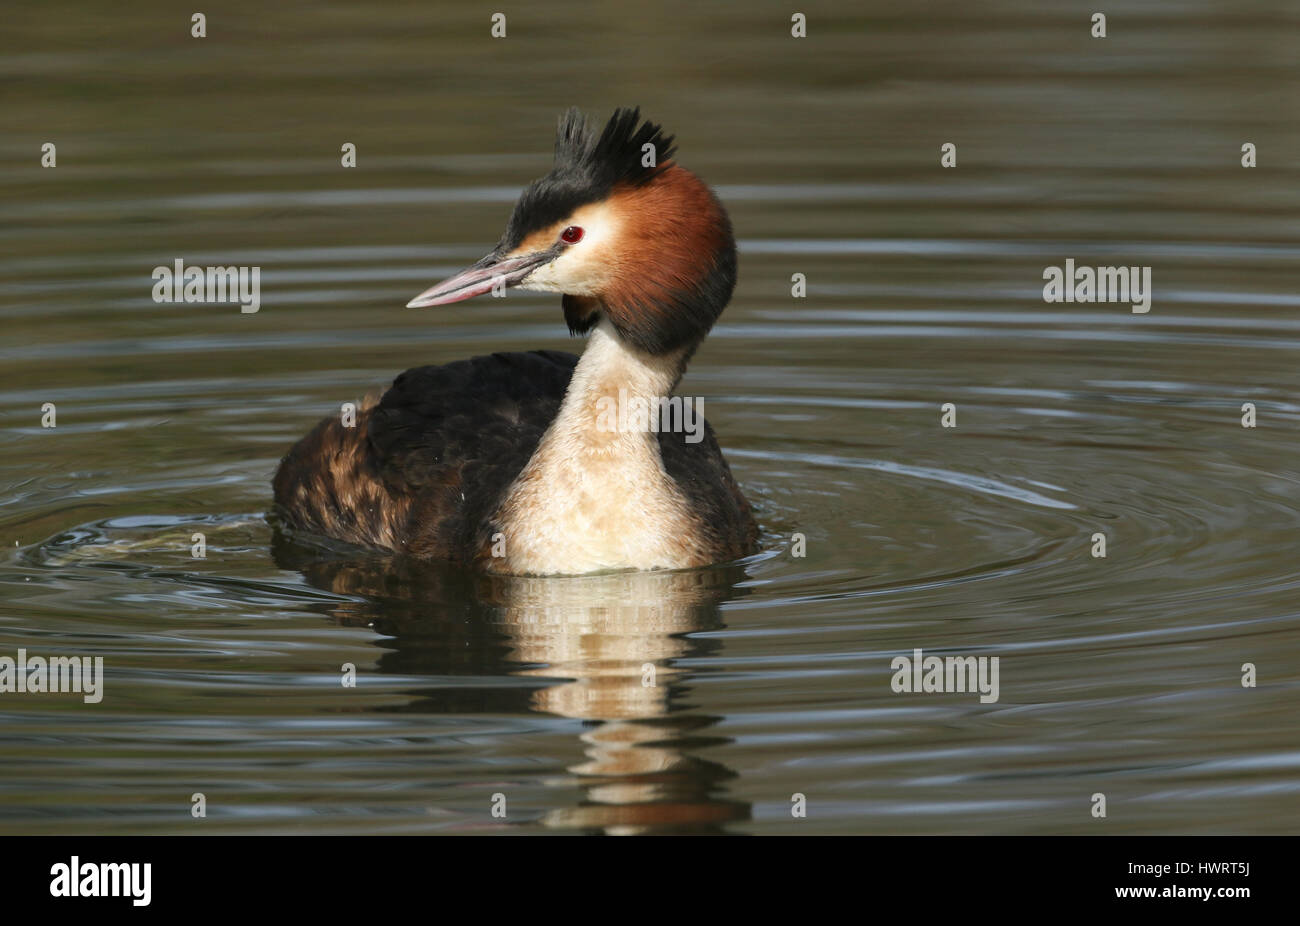 A stunning Great crested Grebe (Podiceps cristatus) swimming on a river. - Stock Image